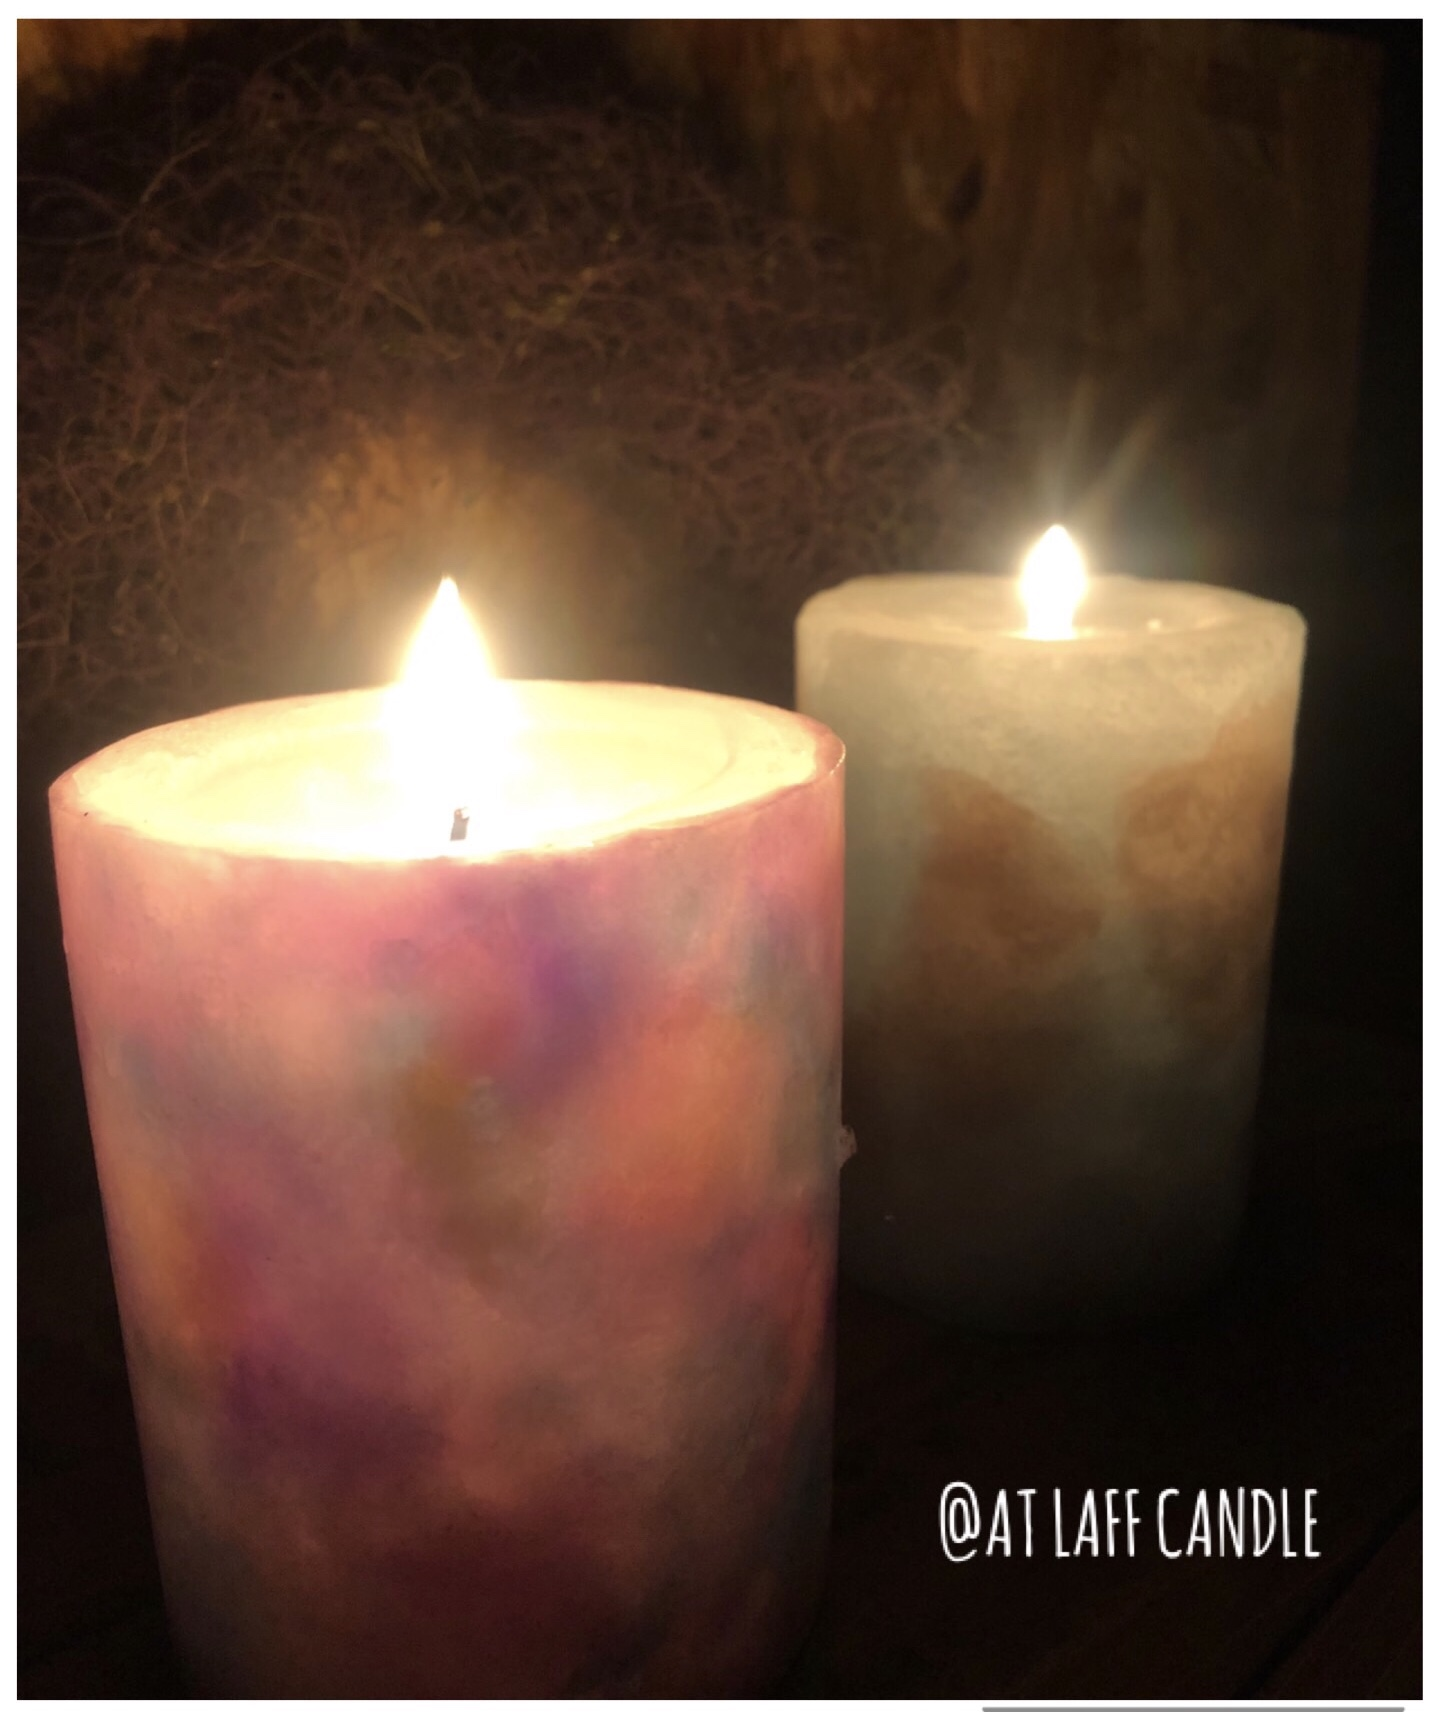 AT LAFF CANDLE